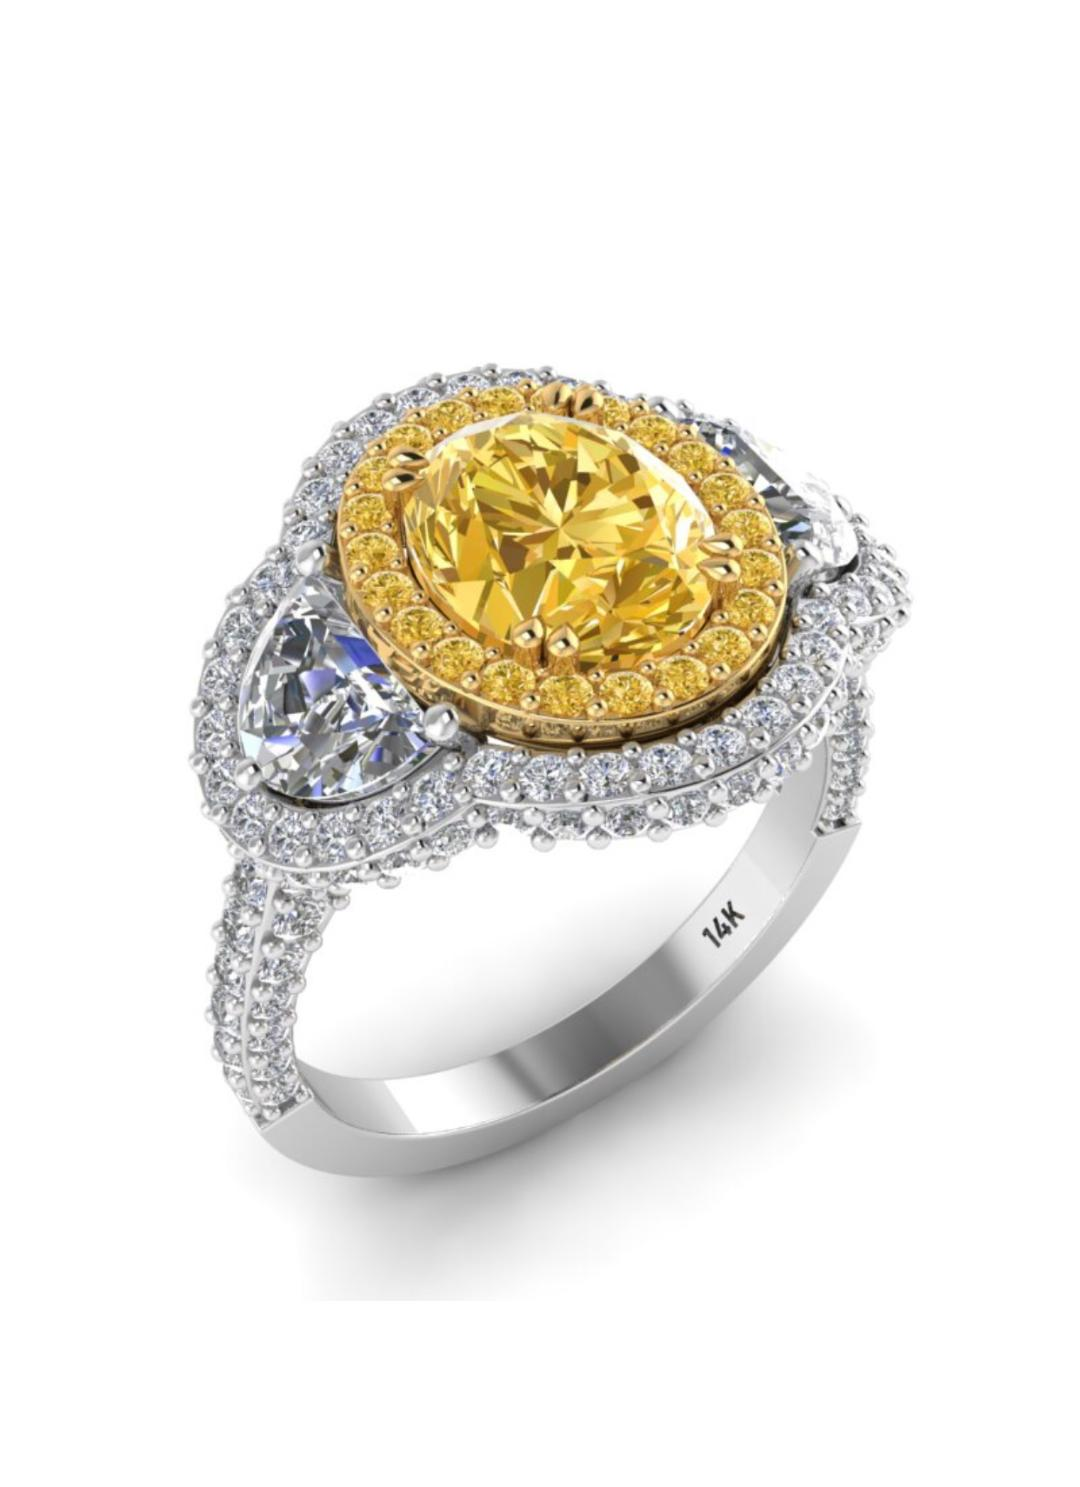 yellow gem for the main stone enagement ring.jpg